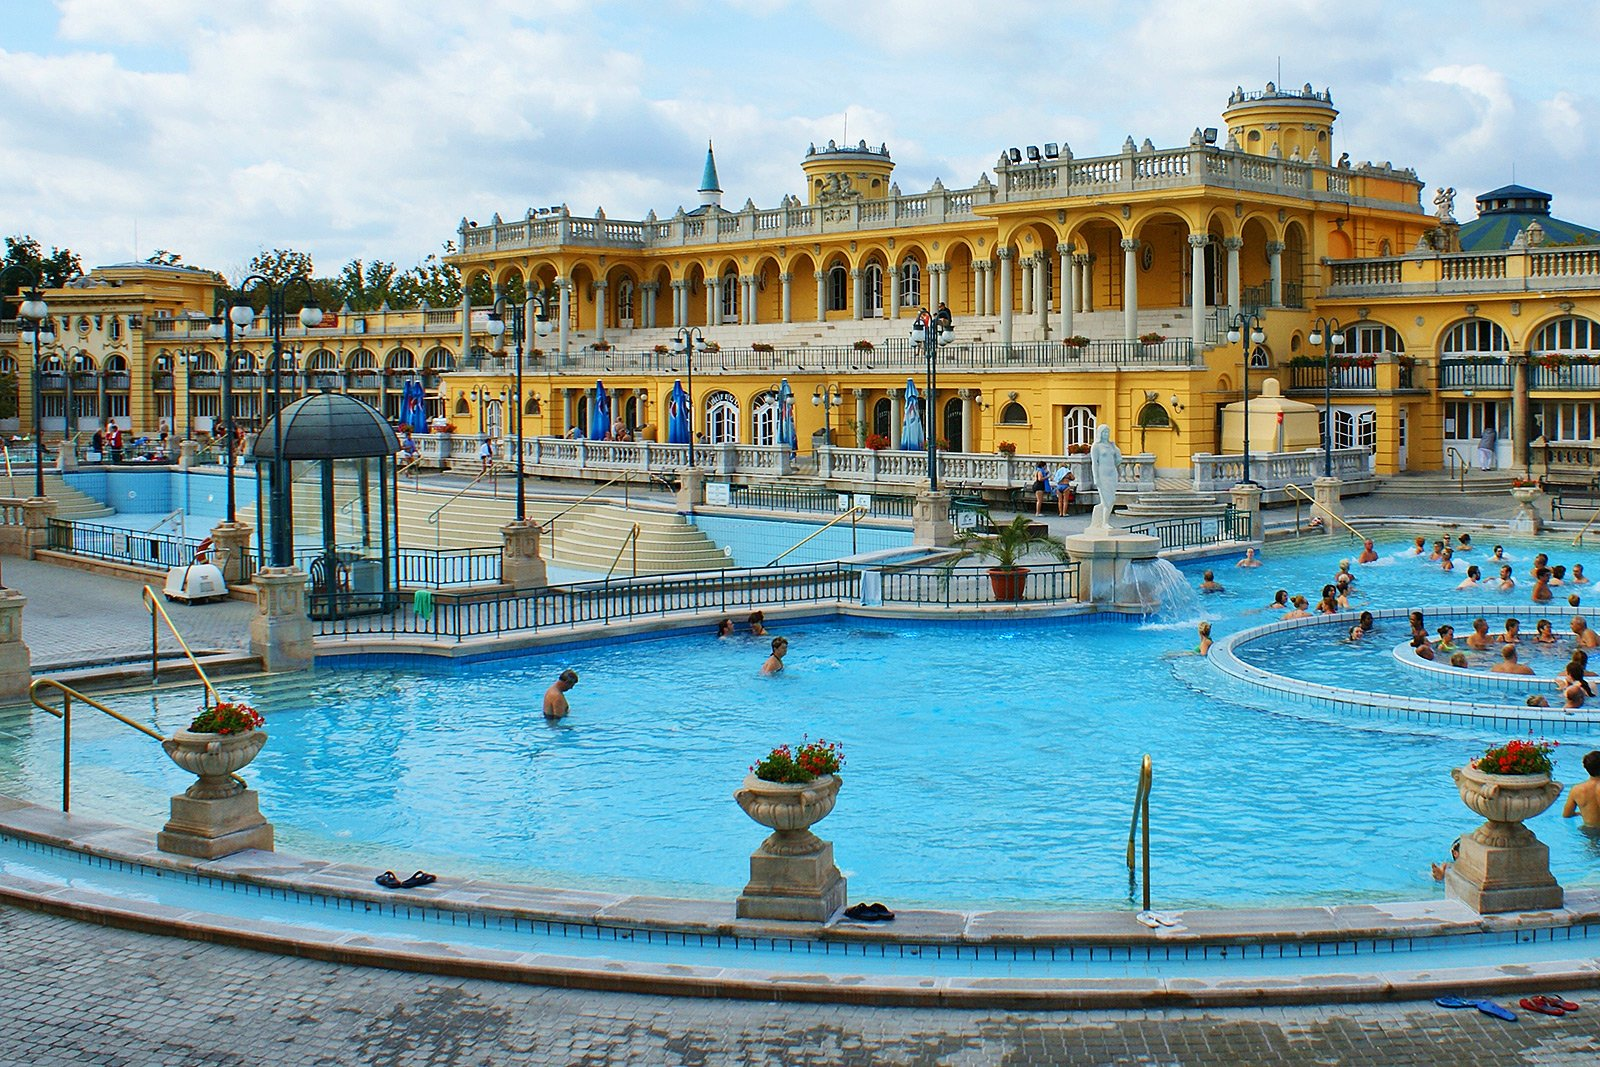 How to relax in the Szechenyi Bath in Budapest